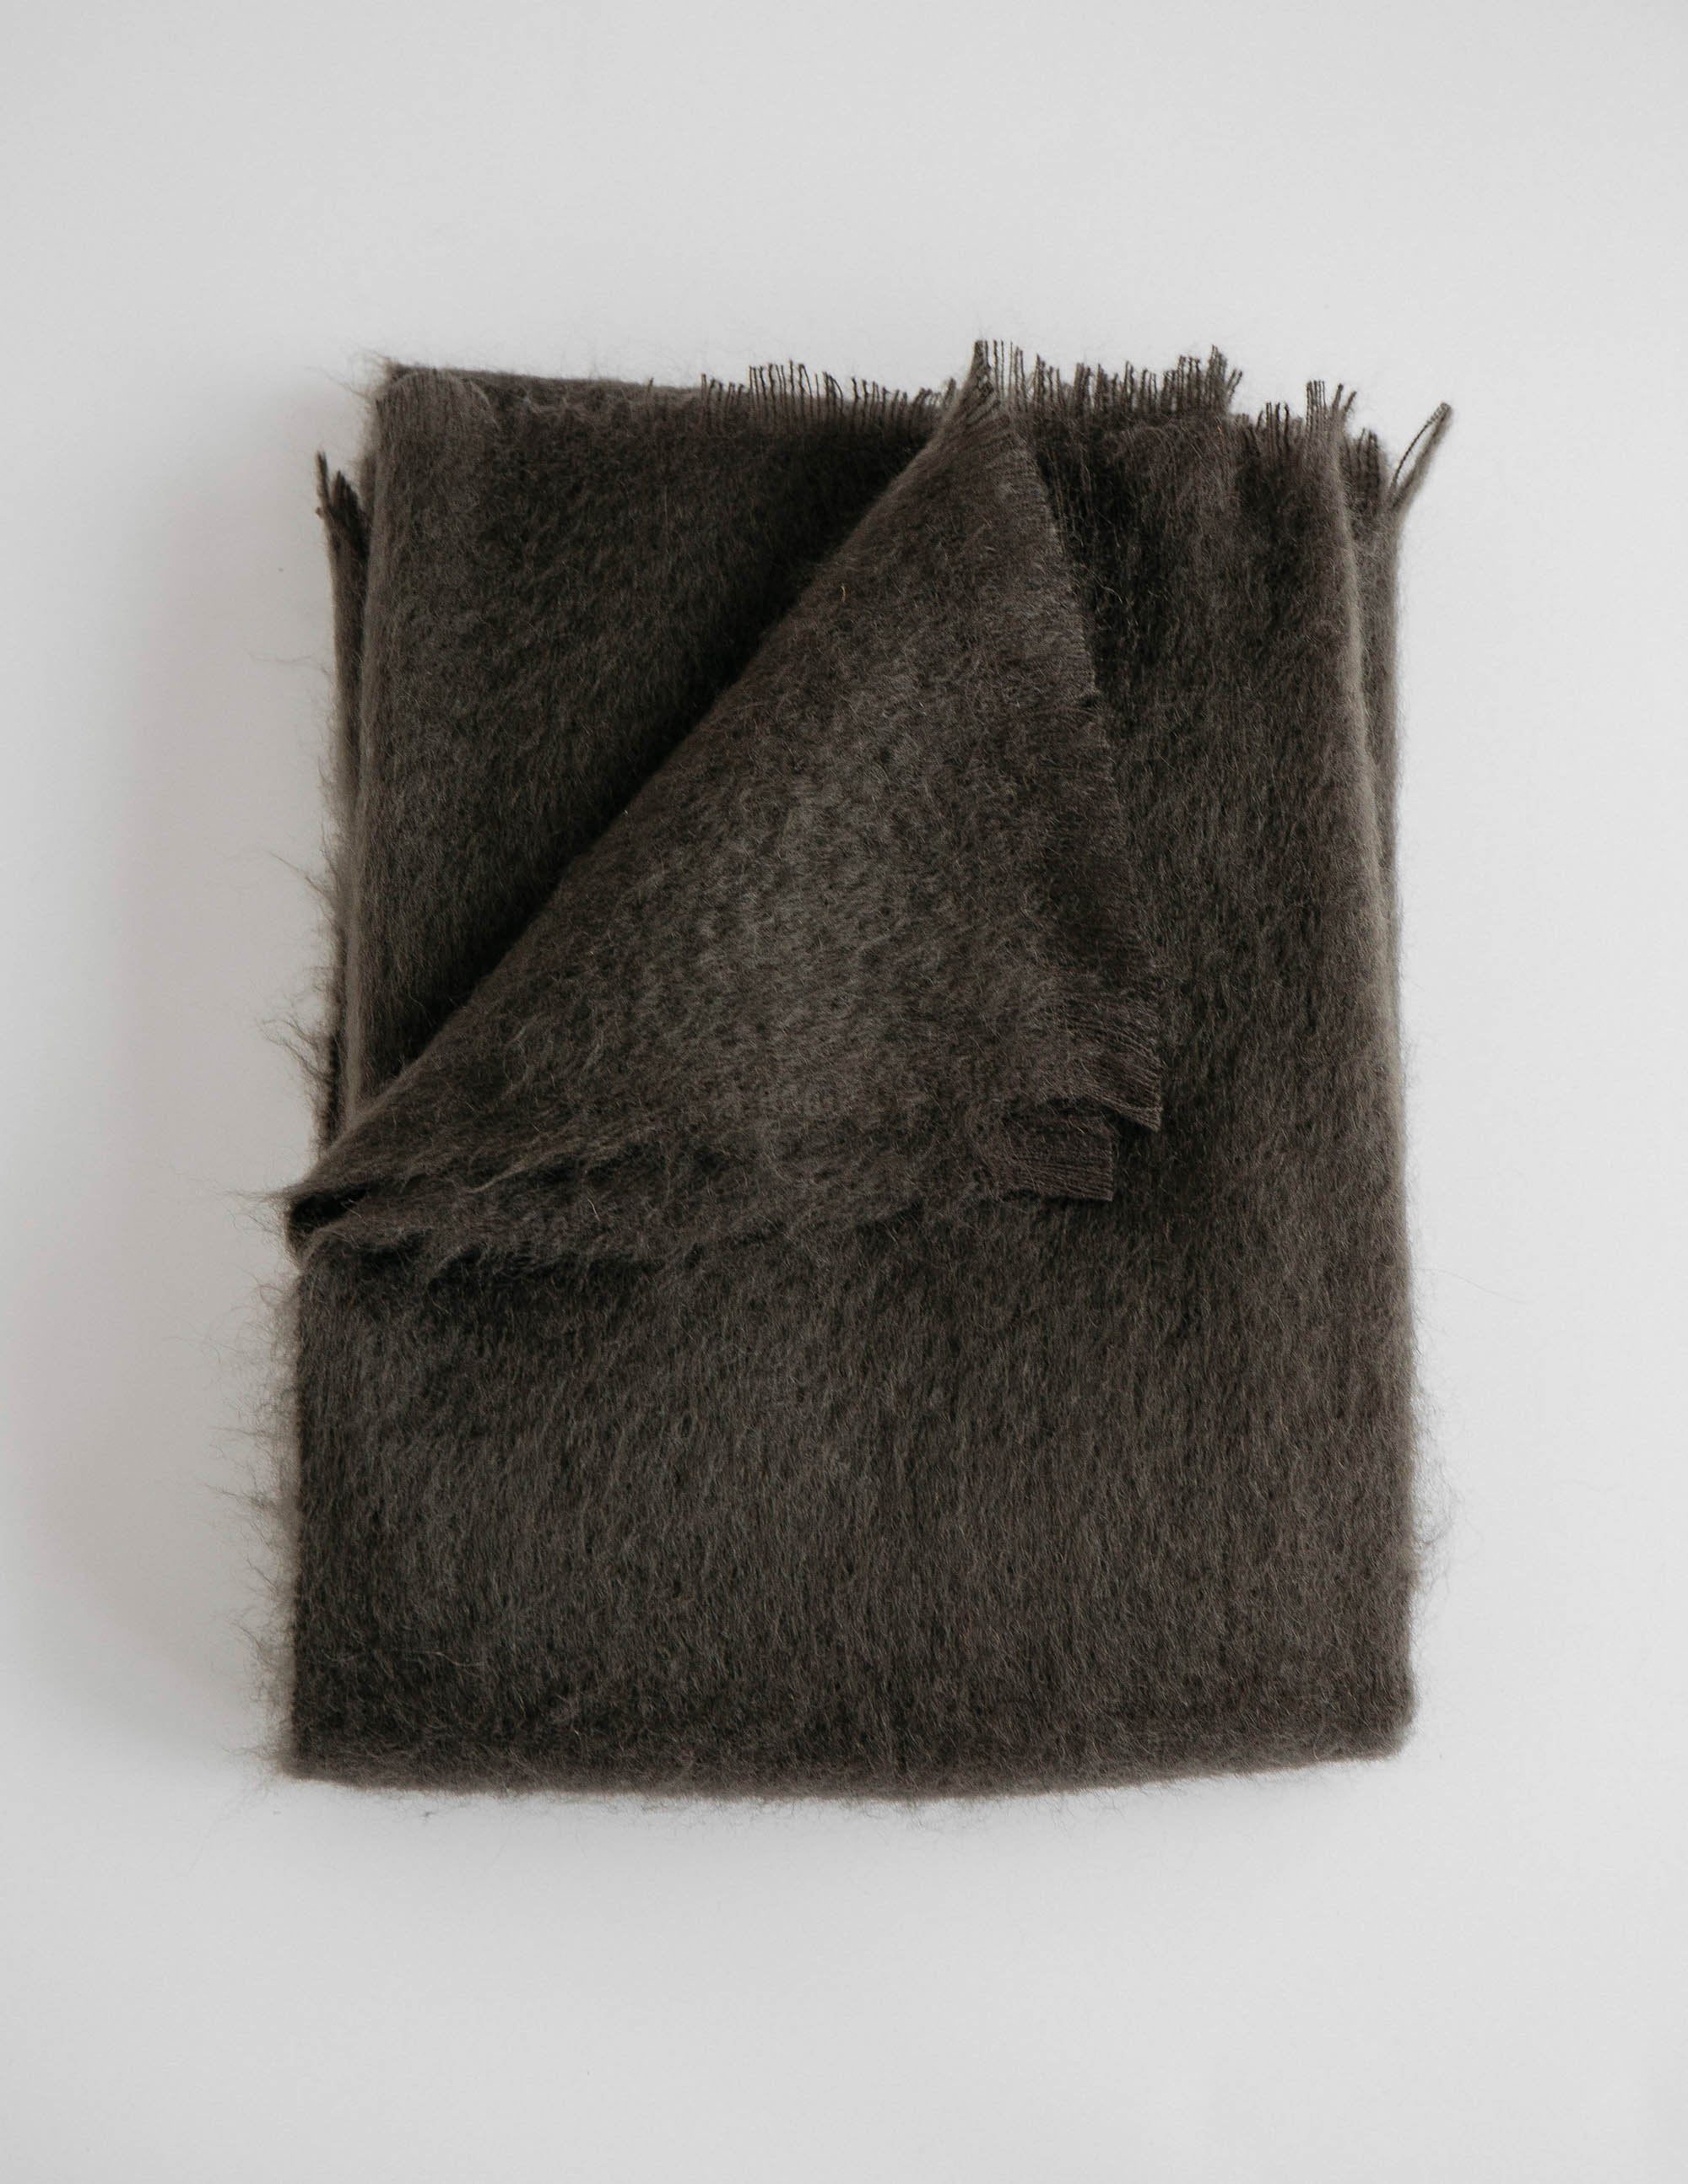 Soft dark brown mohair throw blanket